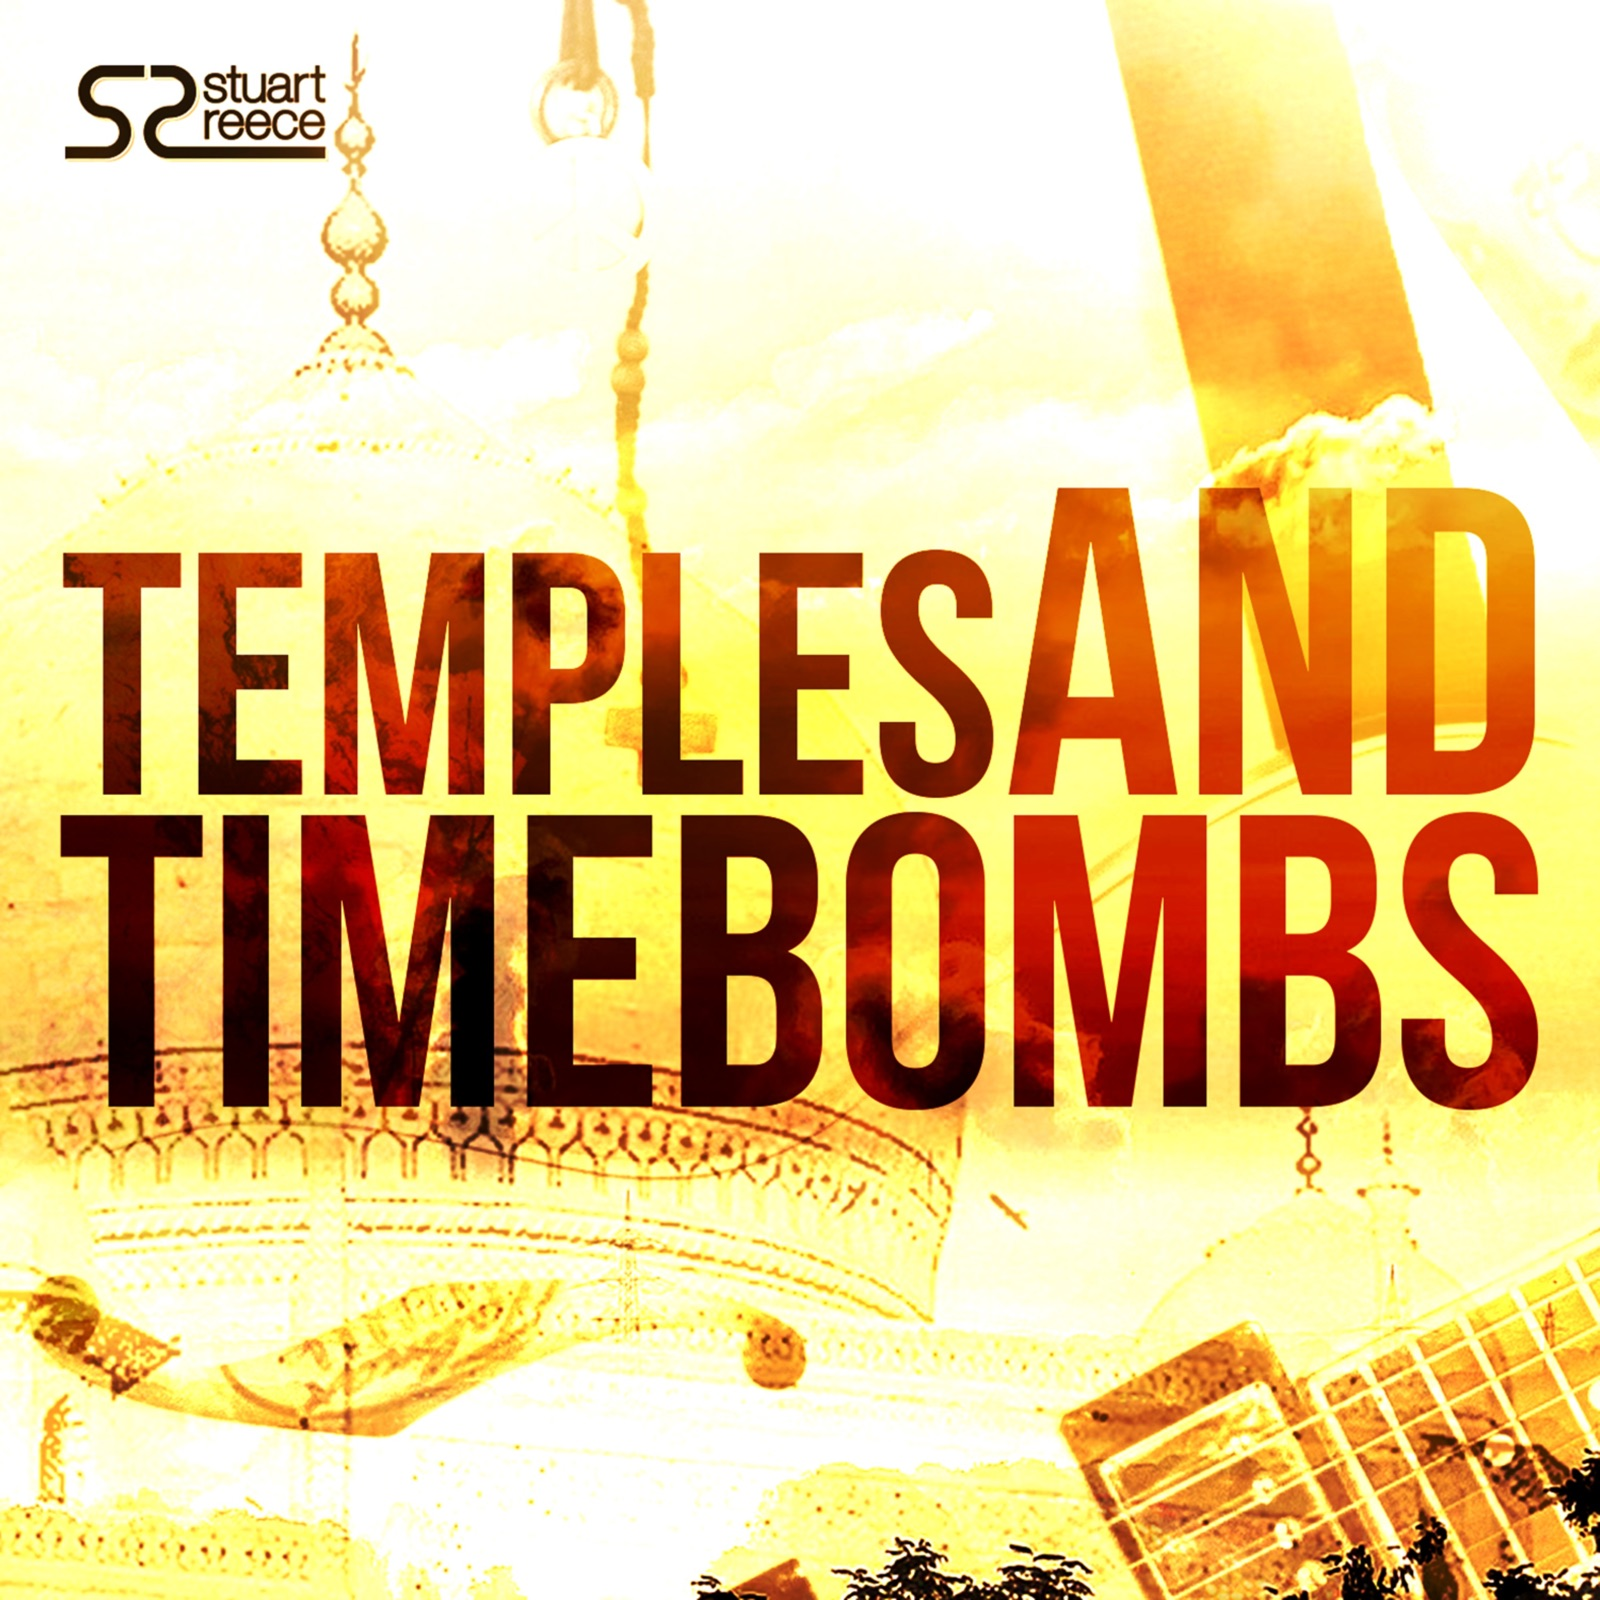 Stuart Reece (Temples and Timebombs)